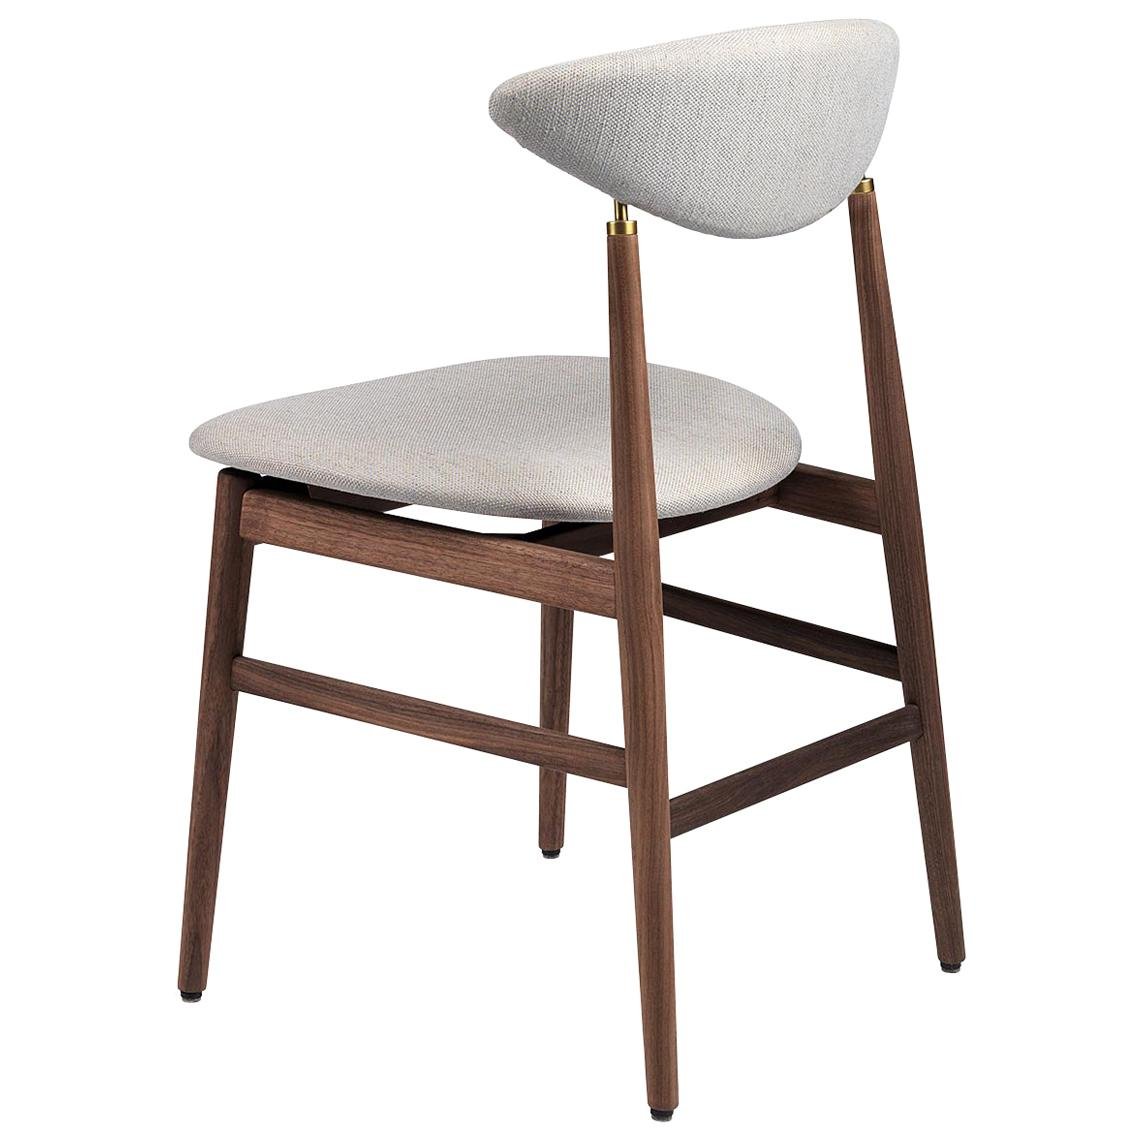 Gent Dining Chair, Fully Upholstered, Natural Oak Base